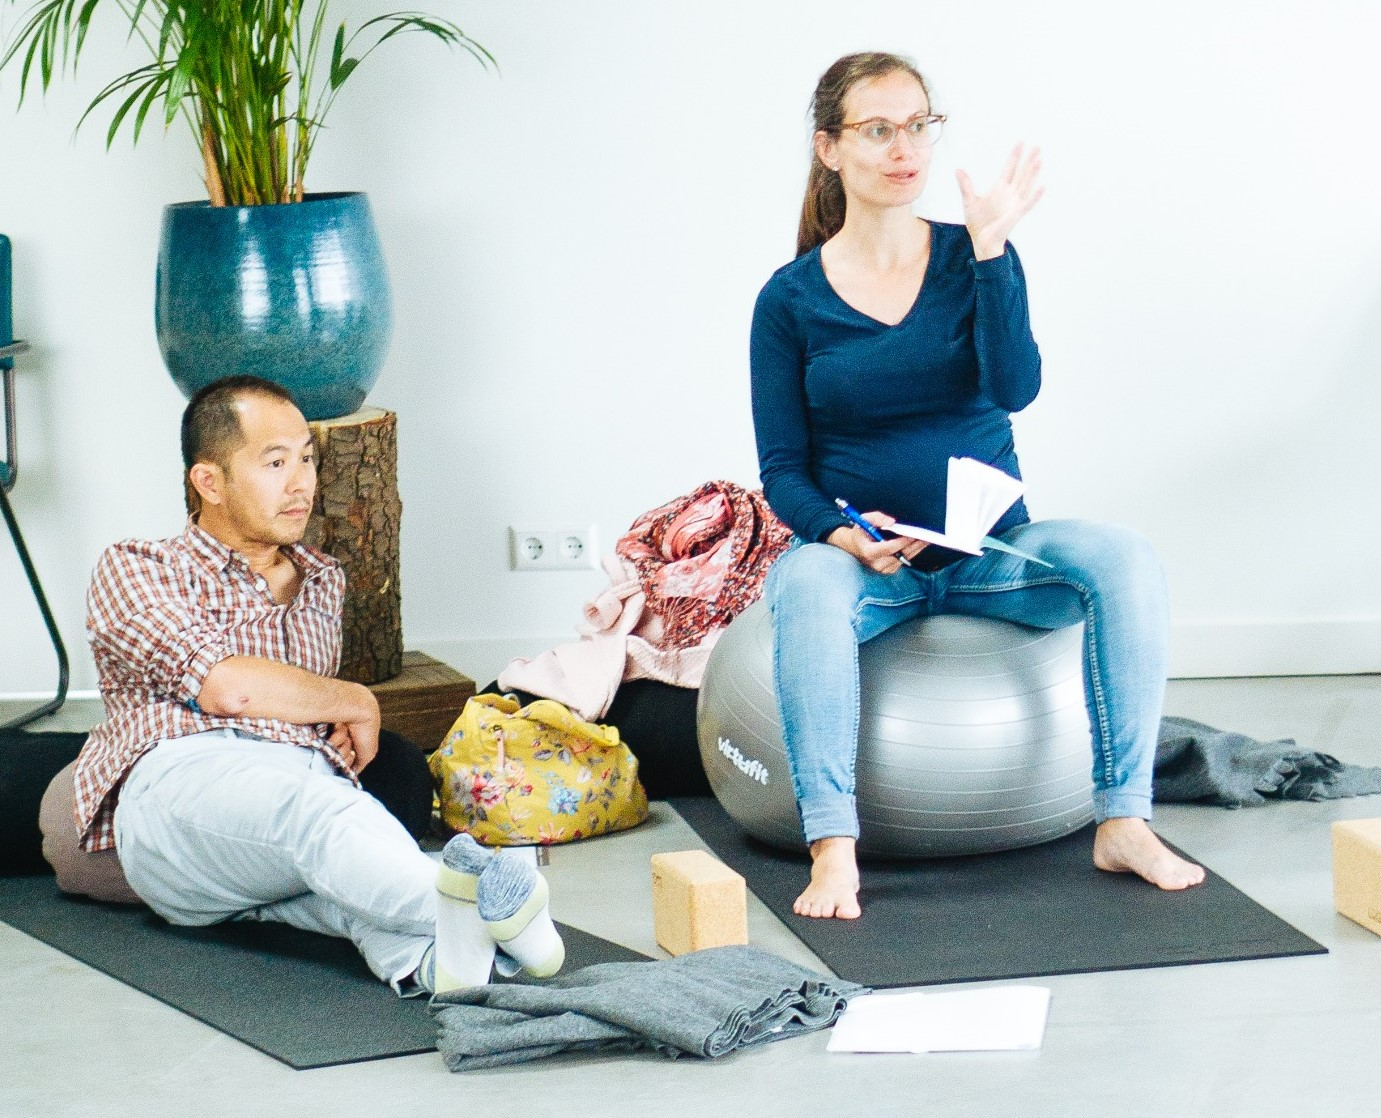 pregnant woman sitting on gymnastics ball talking and gesturing